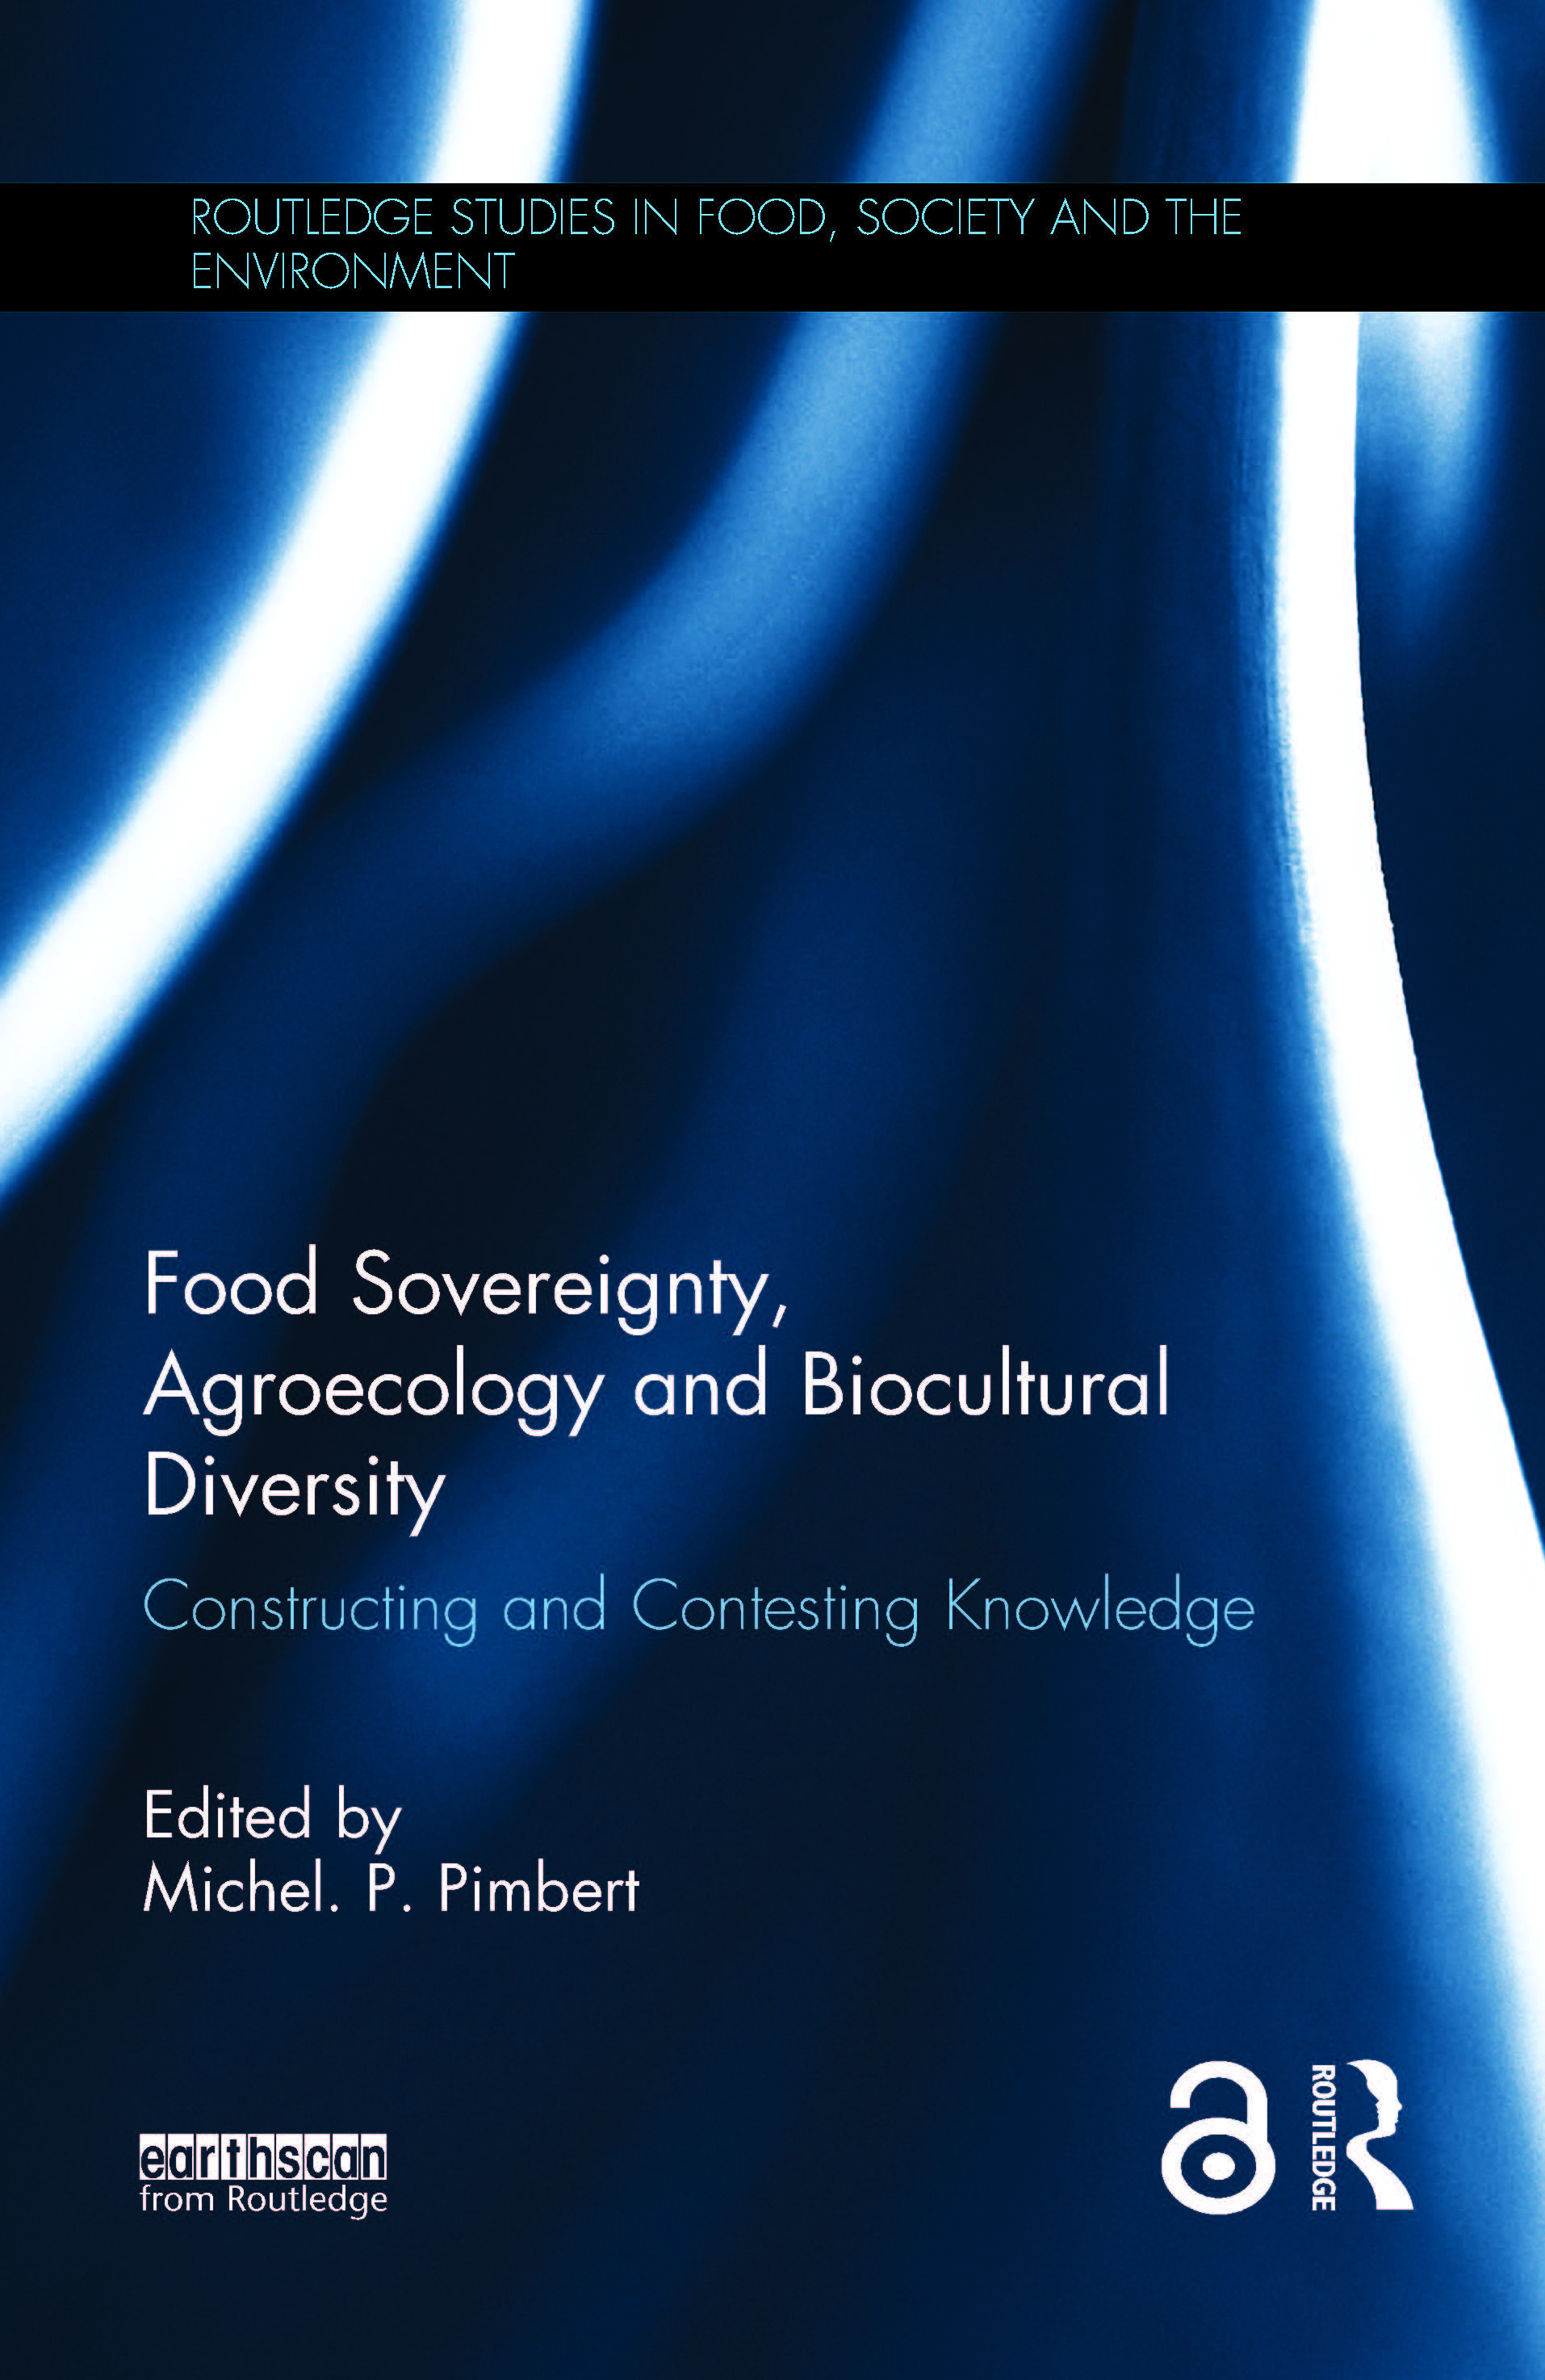 Food Sovereignty, Agroecology and Biocultural Diversity: Constructing and contesting knowledge book cover